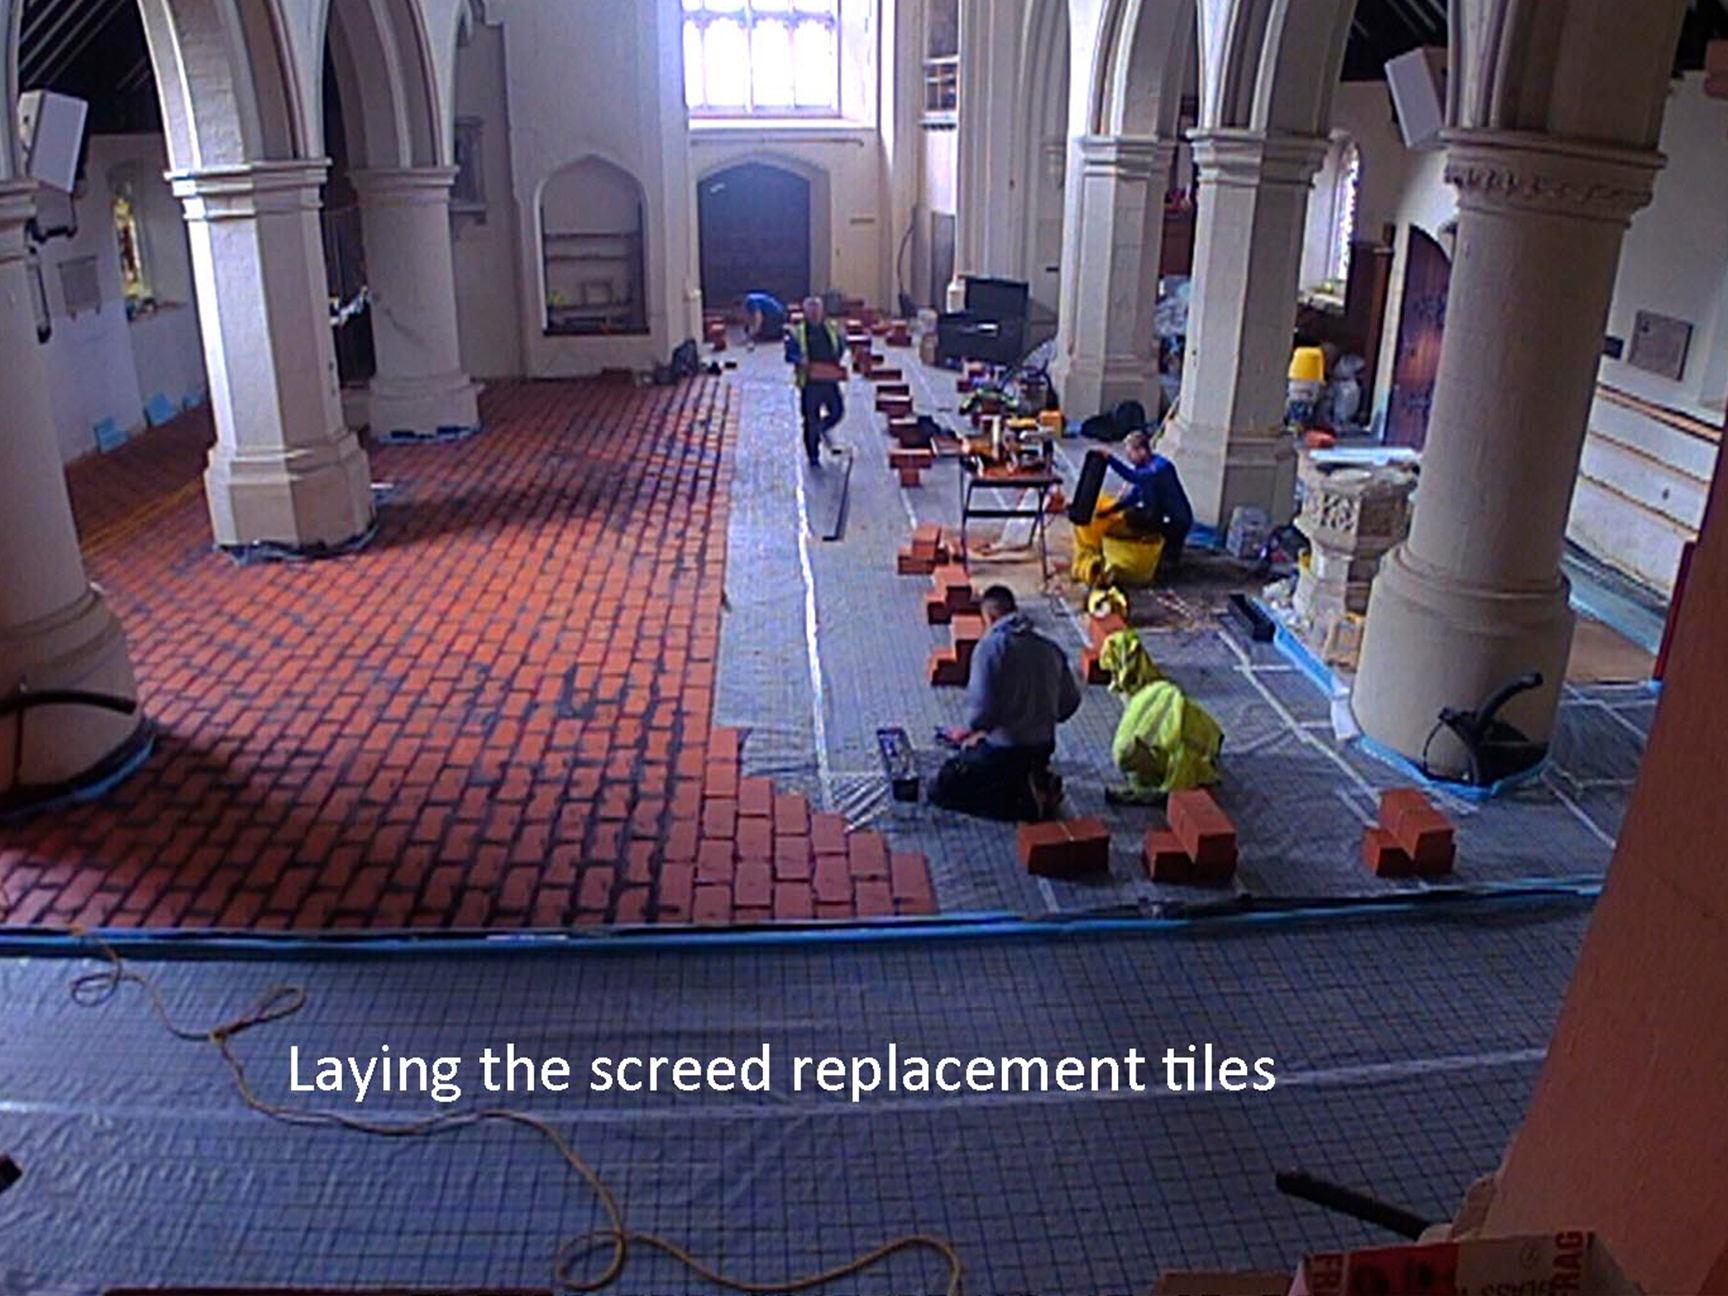 MHTL9-Laying-Screed-Tiles